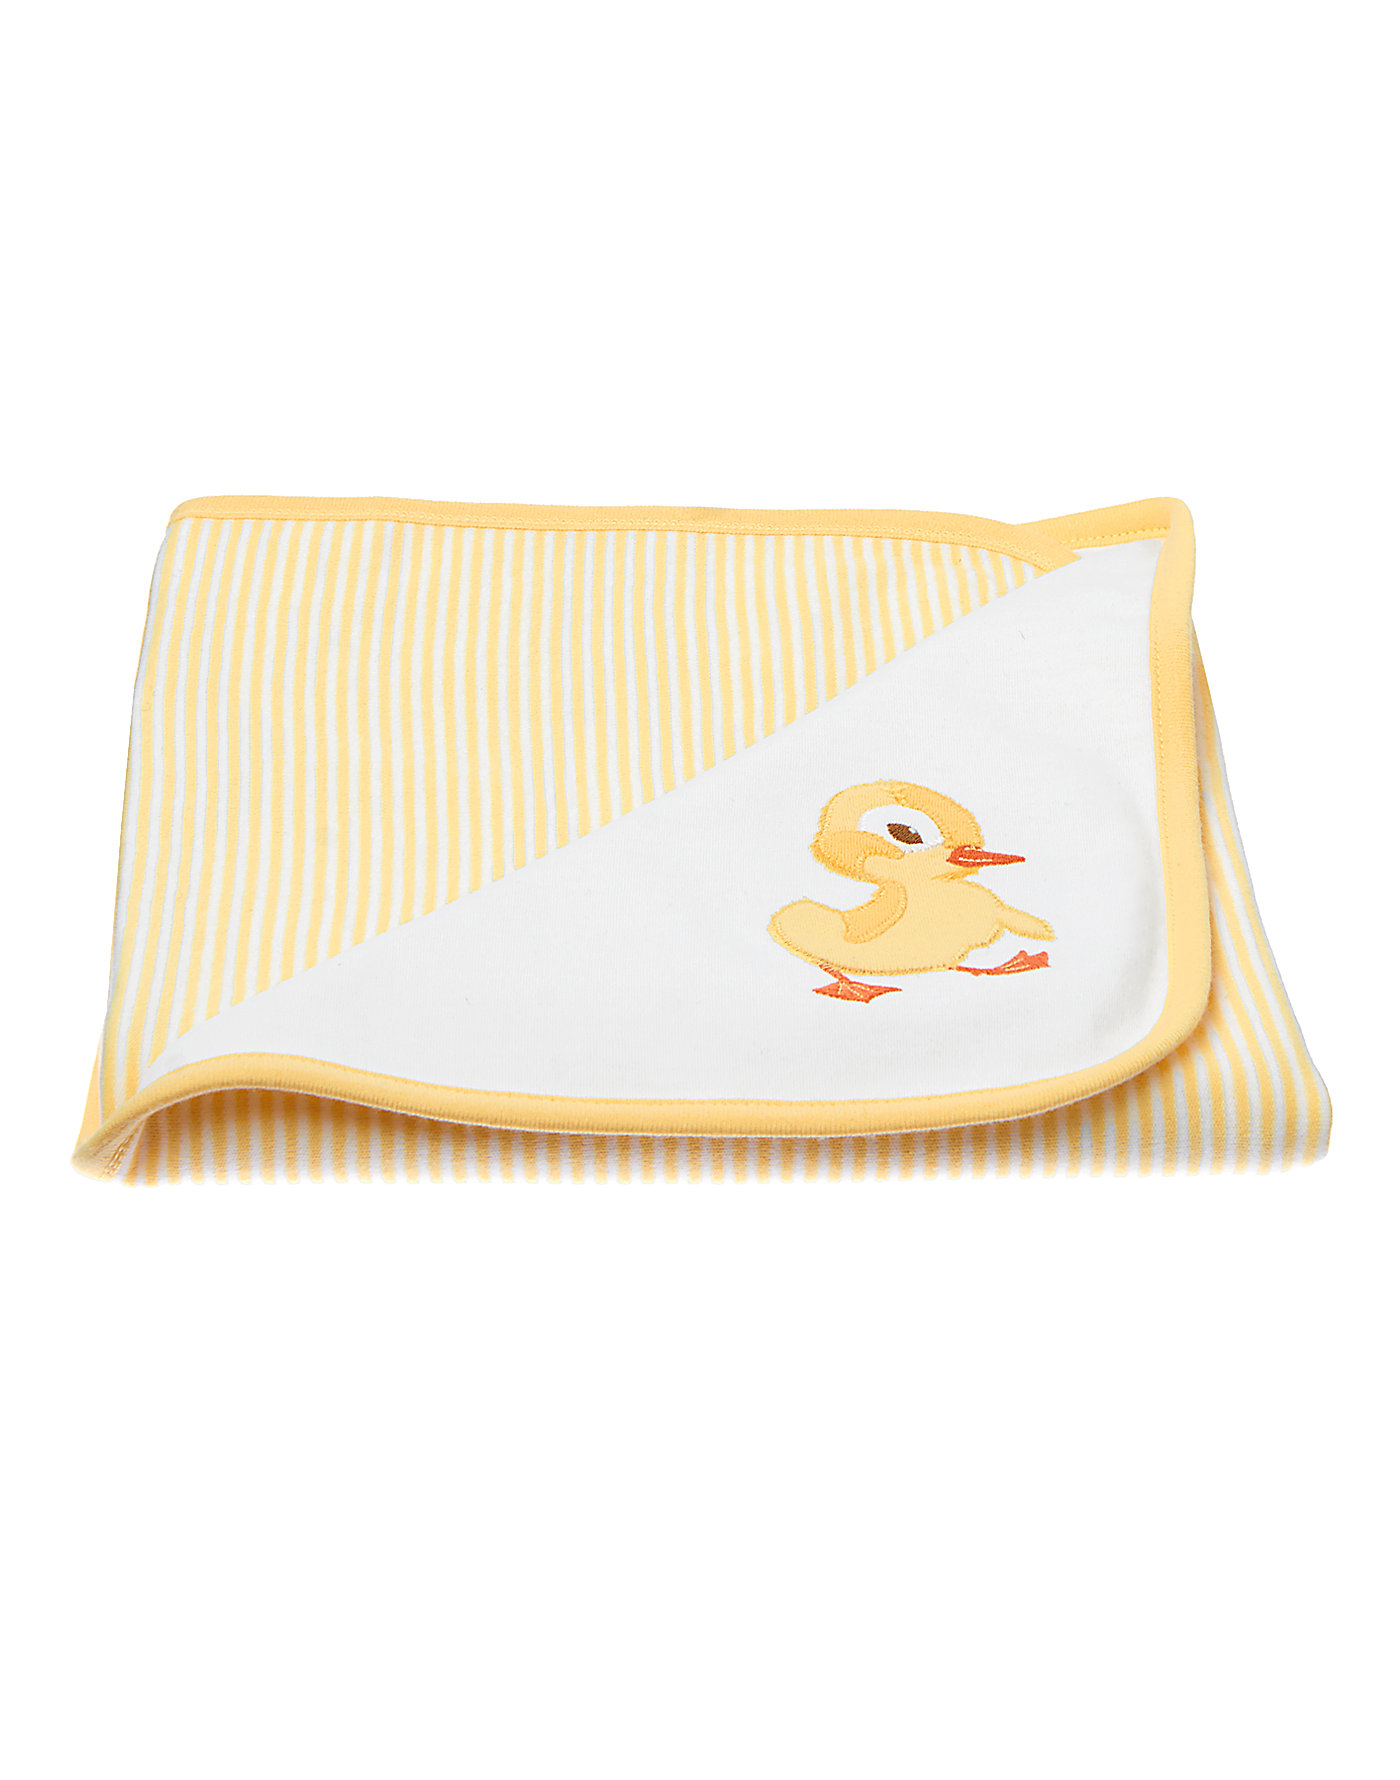 The Fuzzy Duckling Blanket